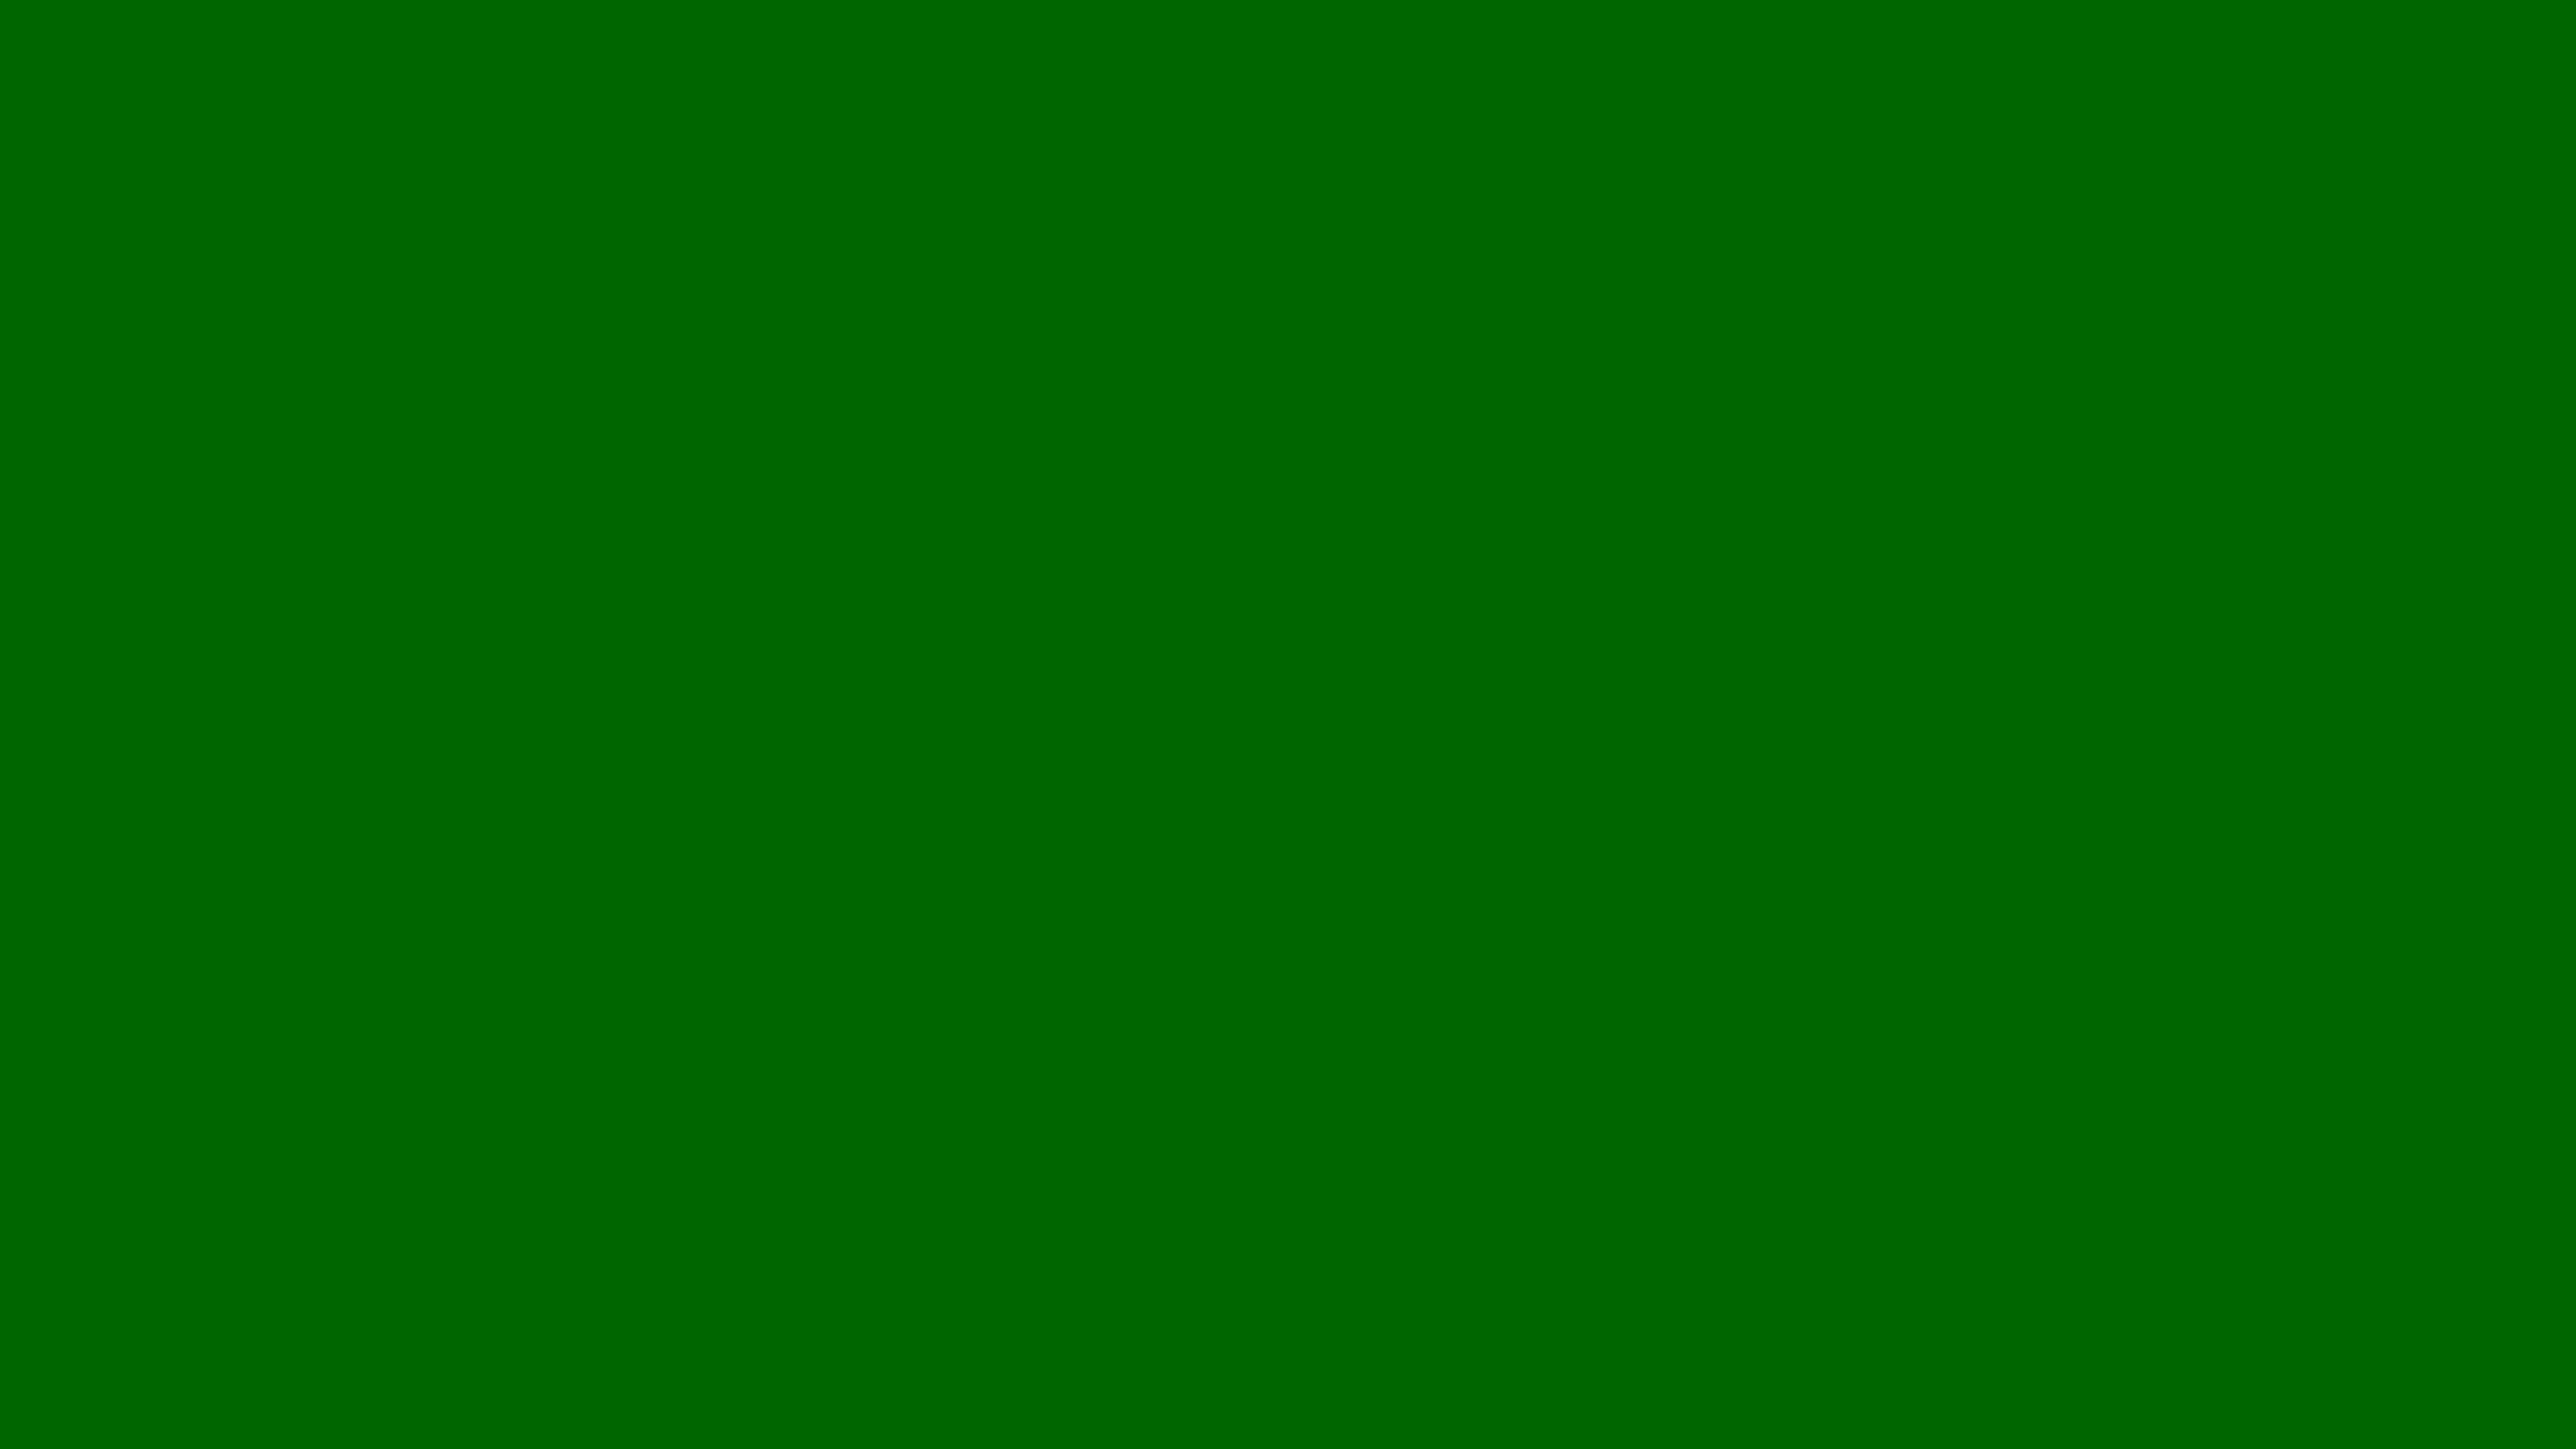 5120x2880 Pakistan Green Solid Color Background